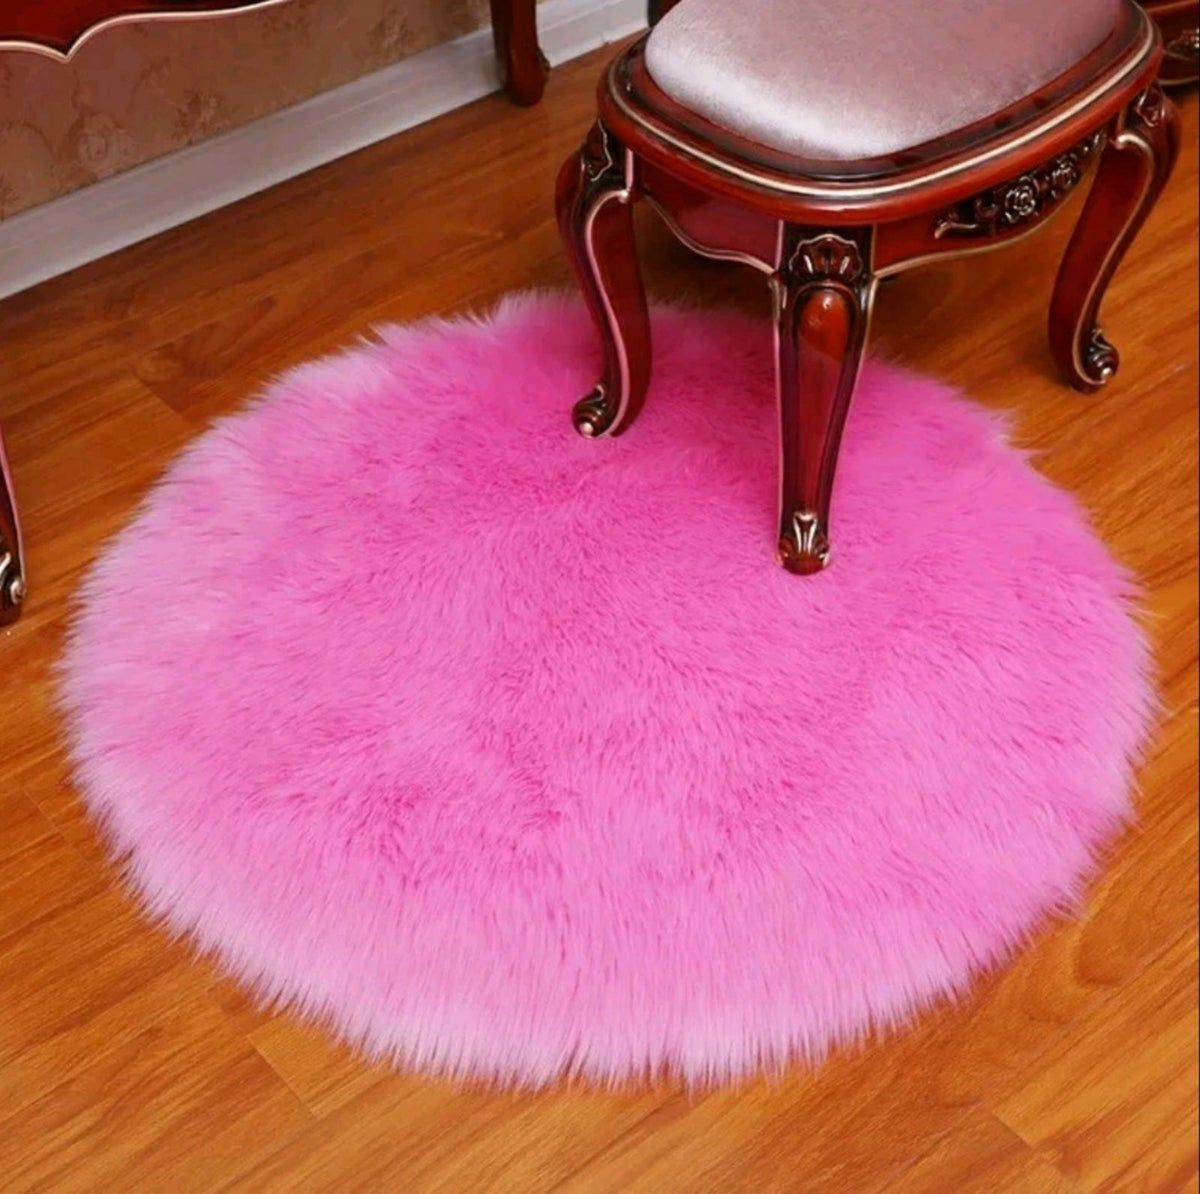 Faux Fur Hot Pink 3 Feet Round Rug Faux Sheepskin Rug Round Rugs Sheepskin Rug